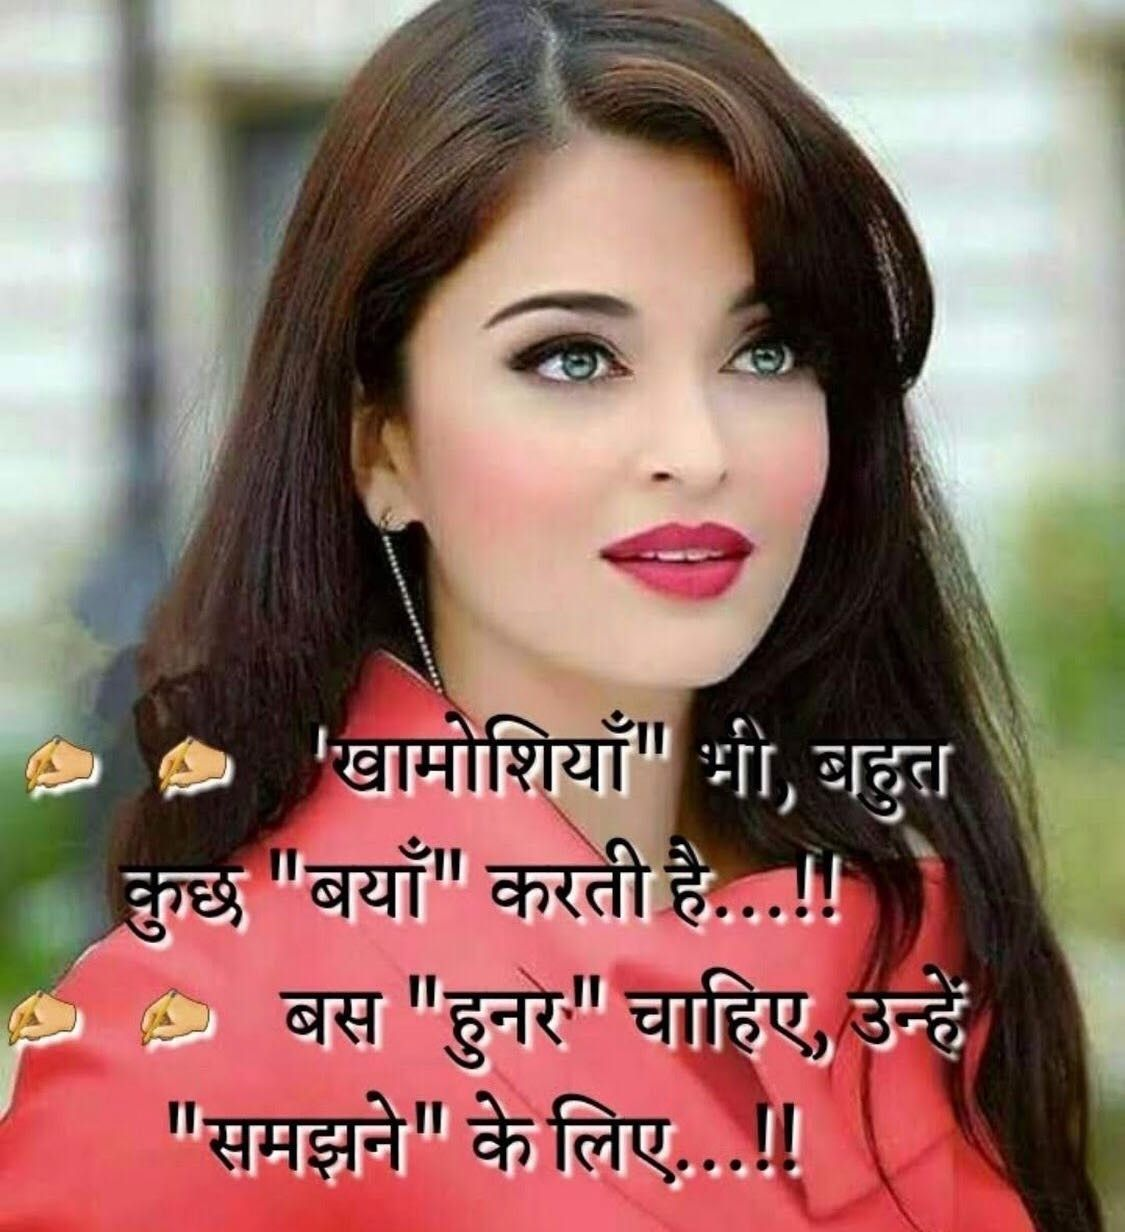 Sanchita1999 Heart Touching Lines Quotes Sms Shayari Best Quote Shayri Images Hindi Quotes Mana Hindi Quotes Heart Touching Shayari Lines Quotes